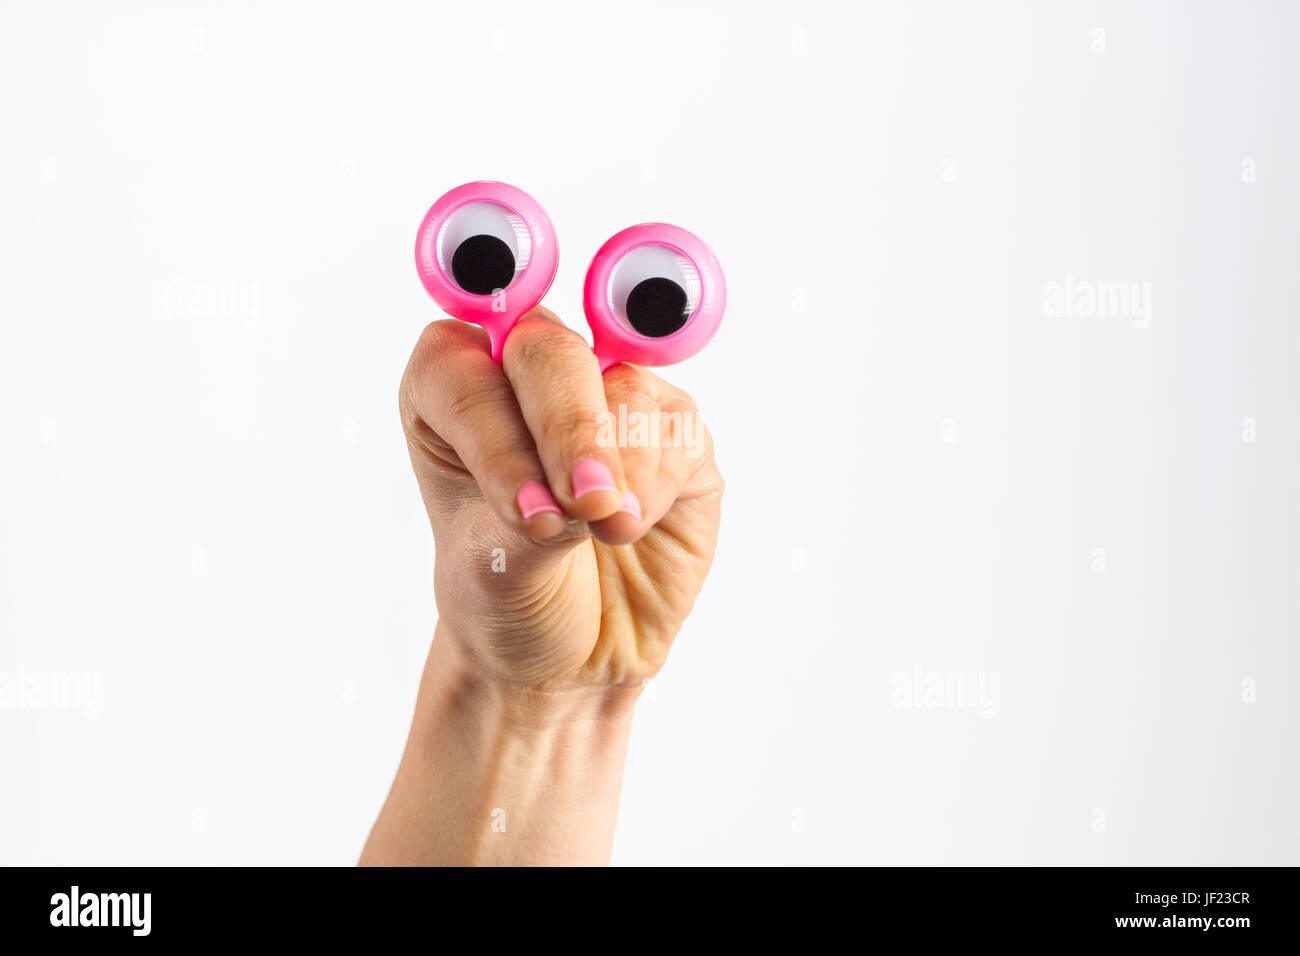 Funny character creature looking very surprised and scared, depicted with female hand and googly eyes. Isolated - Stock Image